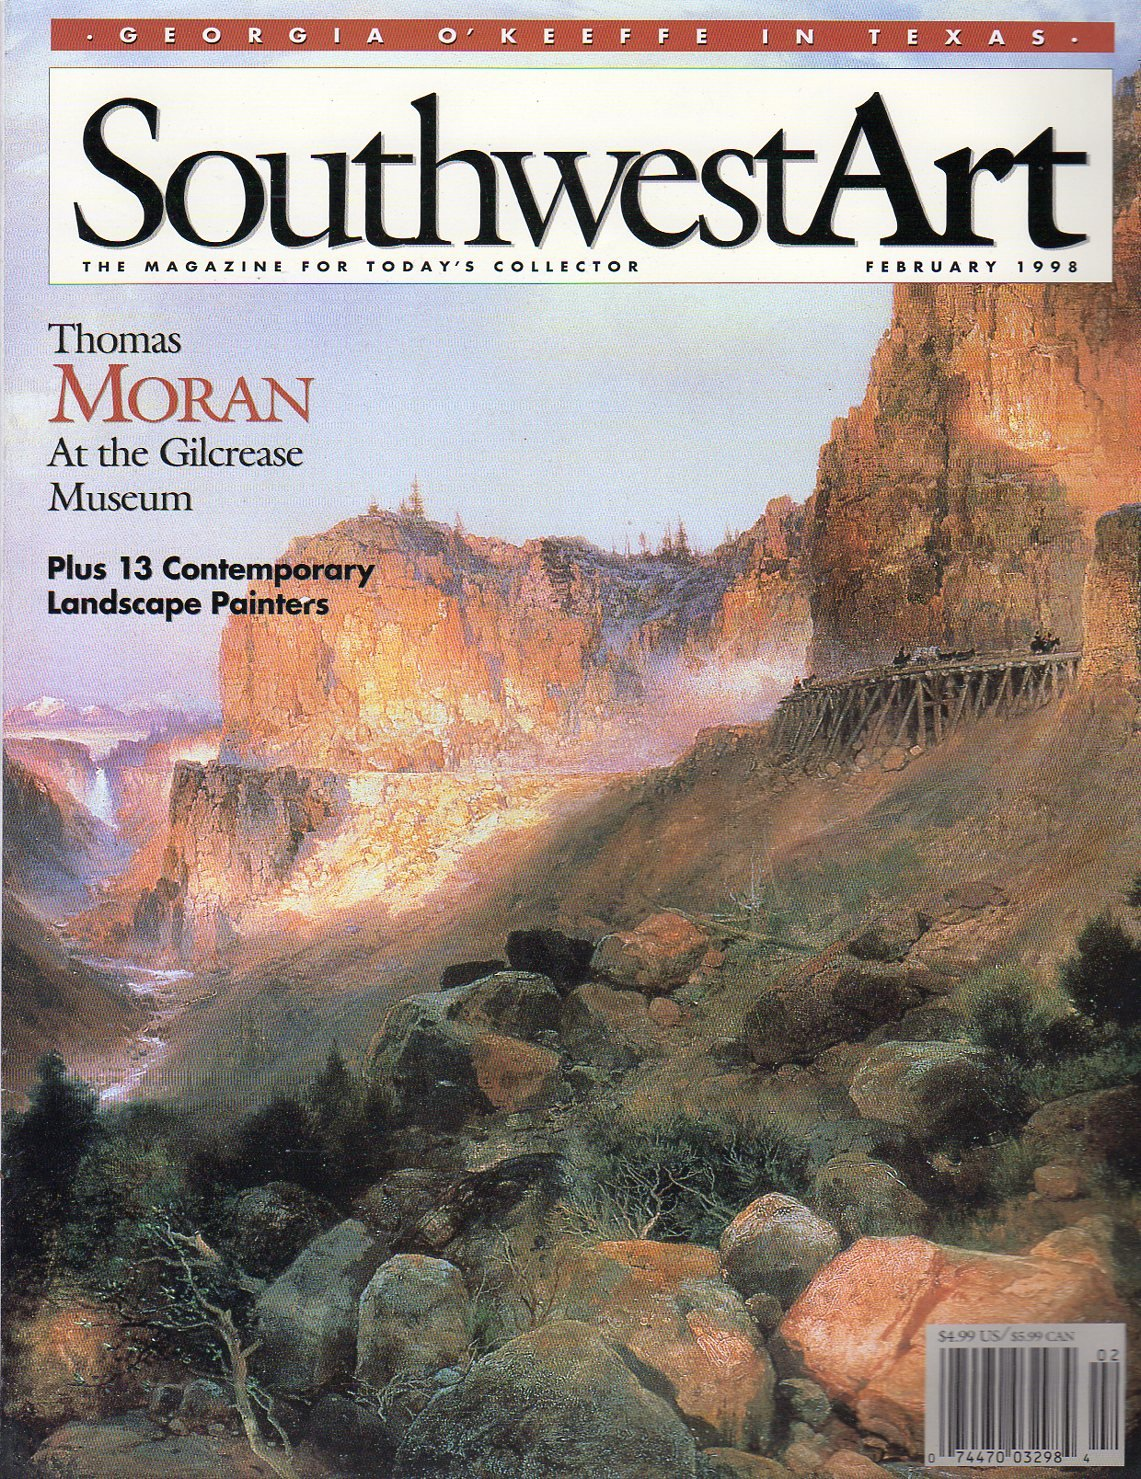 southwest art february 1998 thomas moran at the gilcrease museum